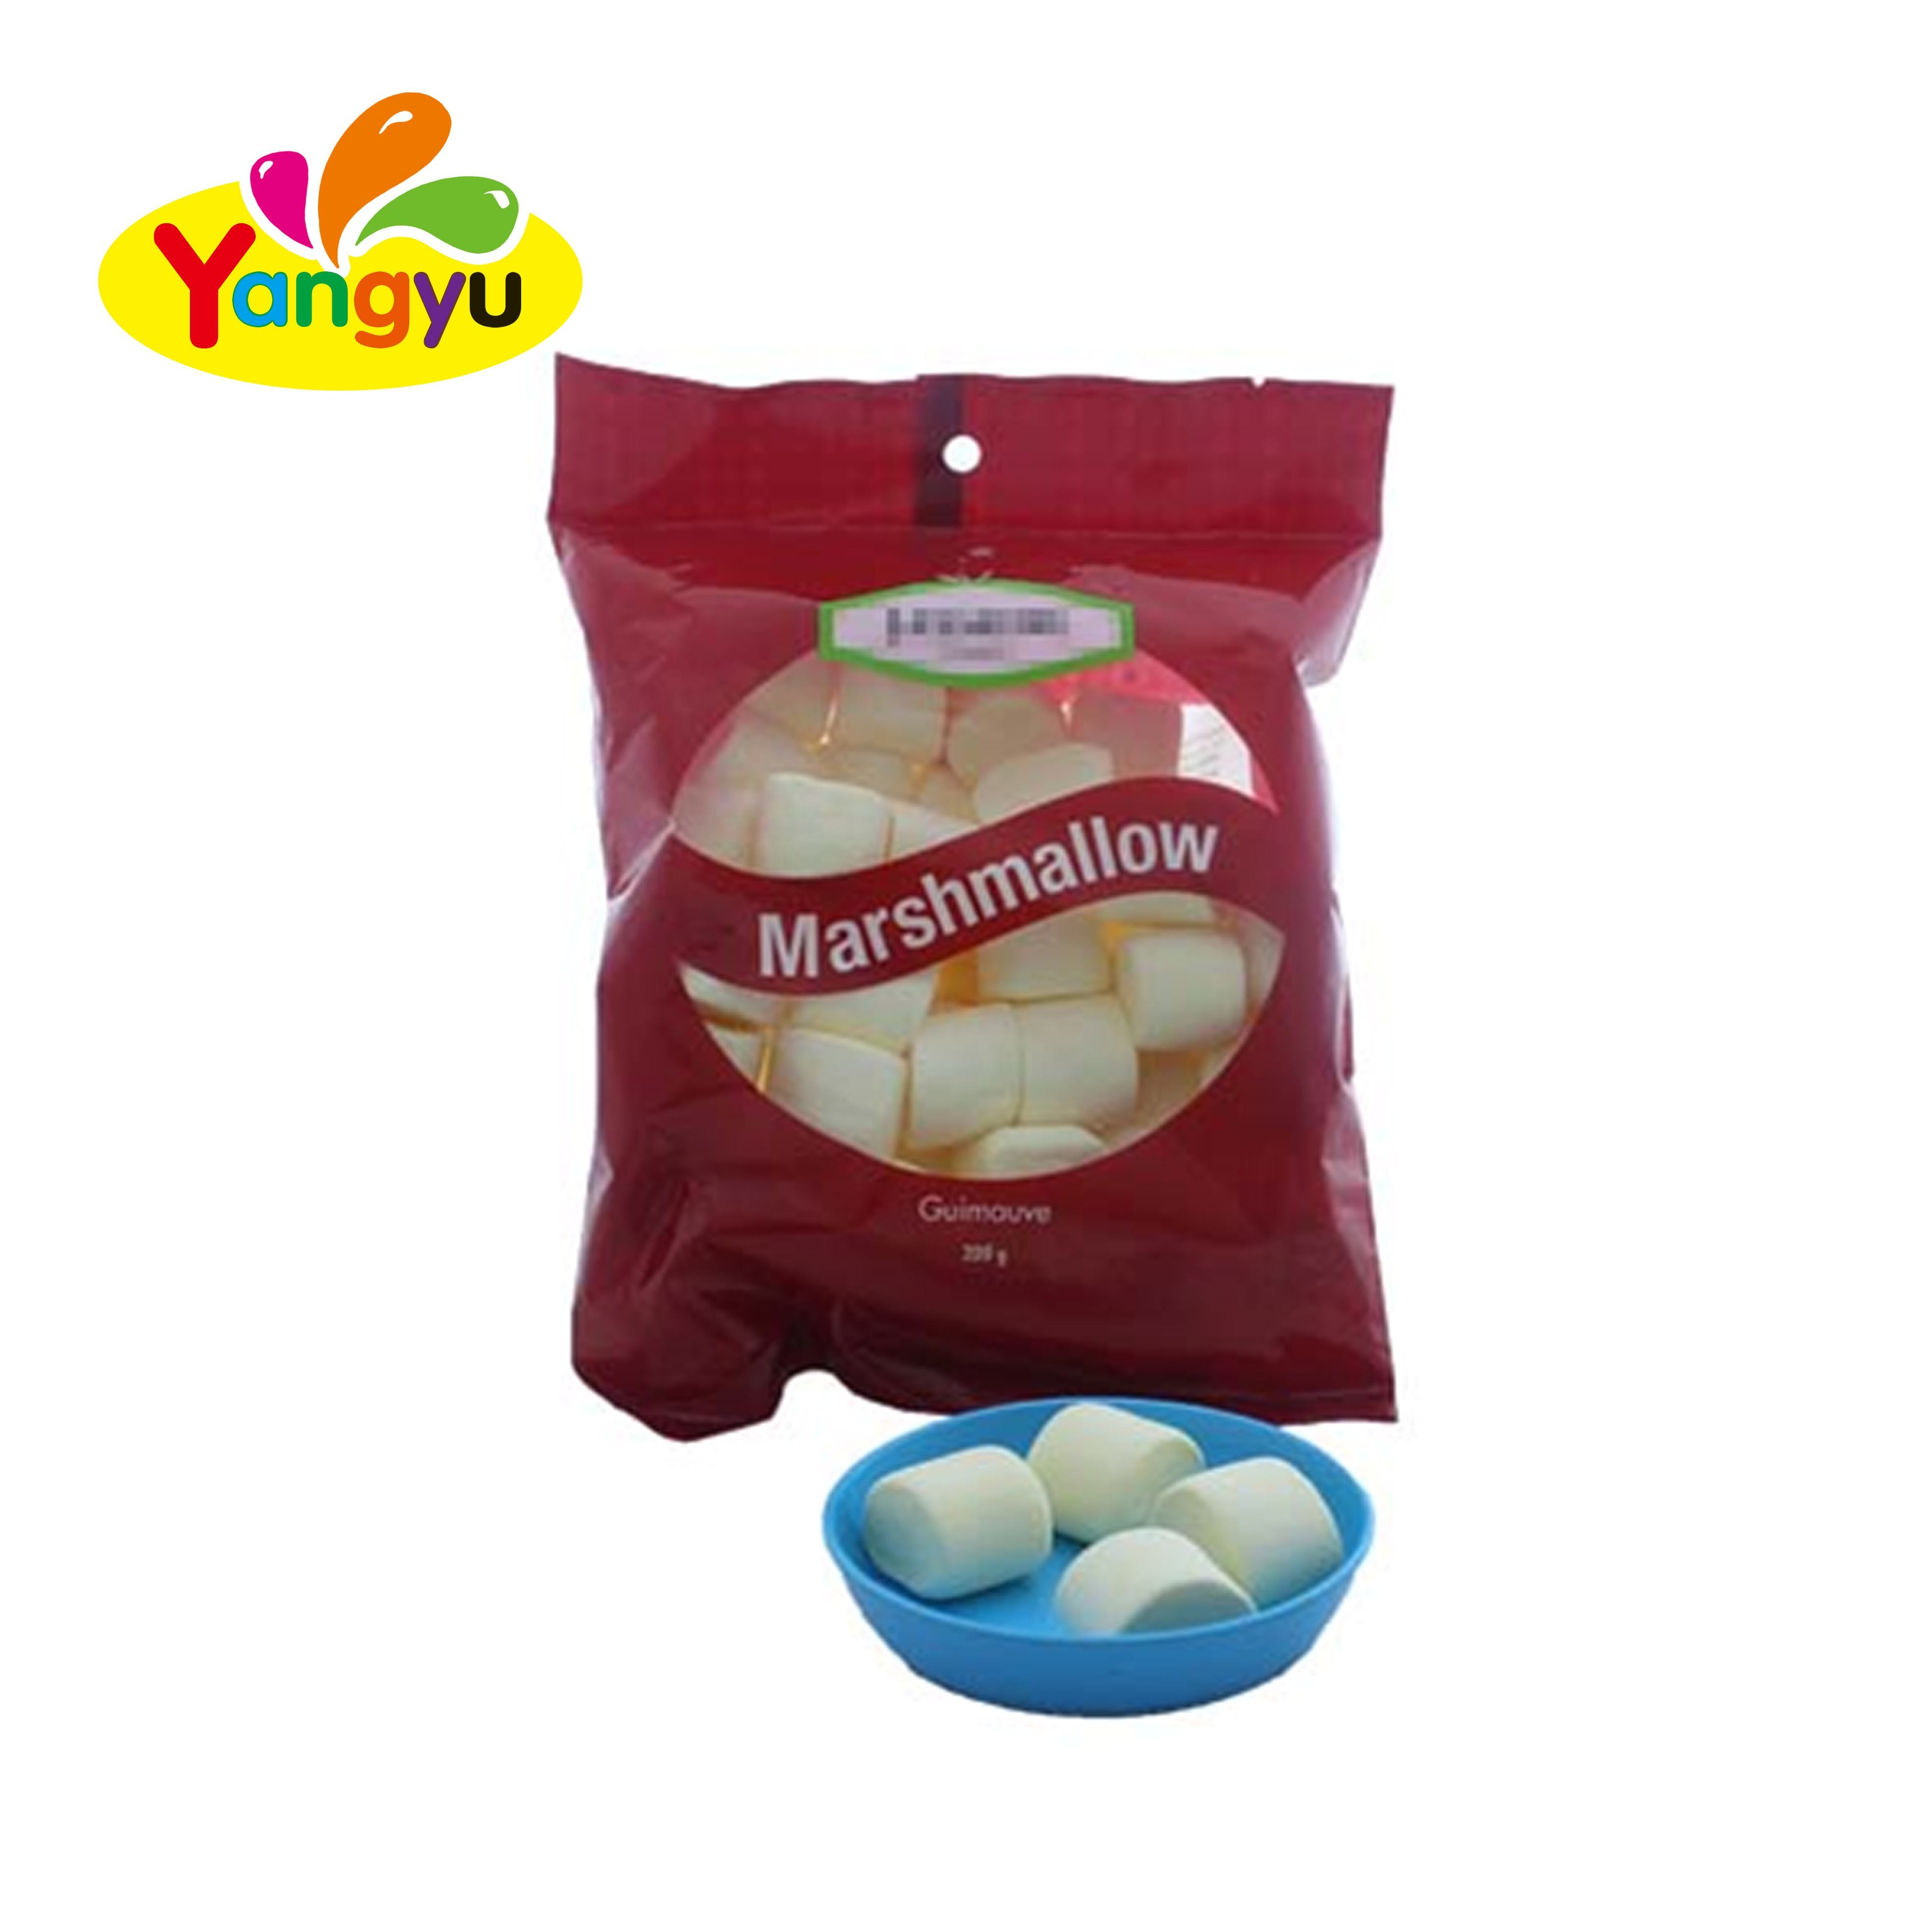 Di Qualità del Hight Pane Cotto A Vapore Forma <span class=keywords><strong>Marshmallow</strong></span> Nuovo Prodotto Mini <span class=keywords><strong>Marshmallow</strong></span> in Borsa